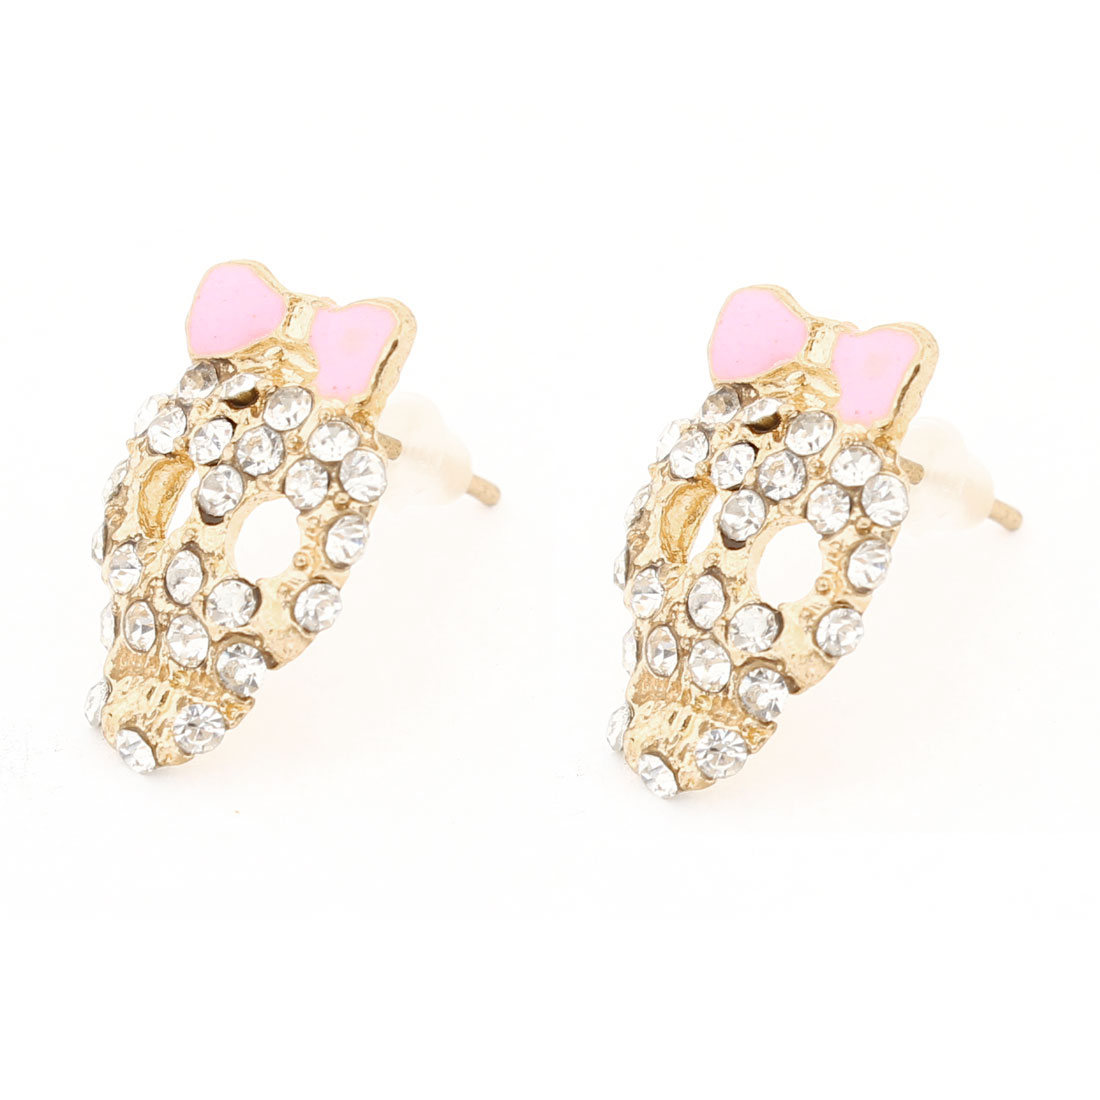 Lady Ear Decor Gold Tone Skull Shape Rhinestone Detailing Stud Earrings Pair